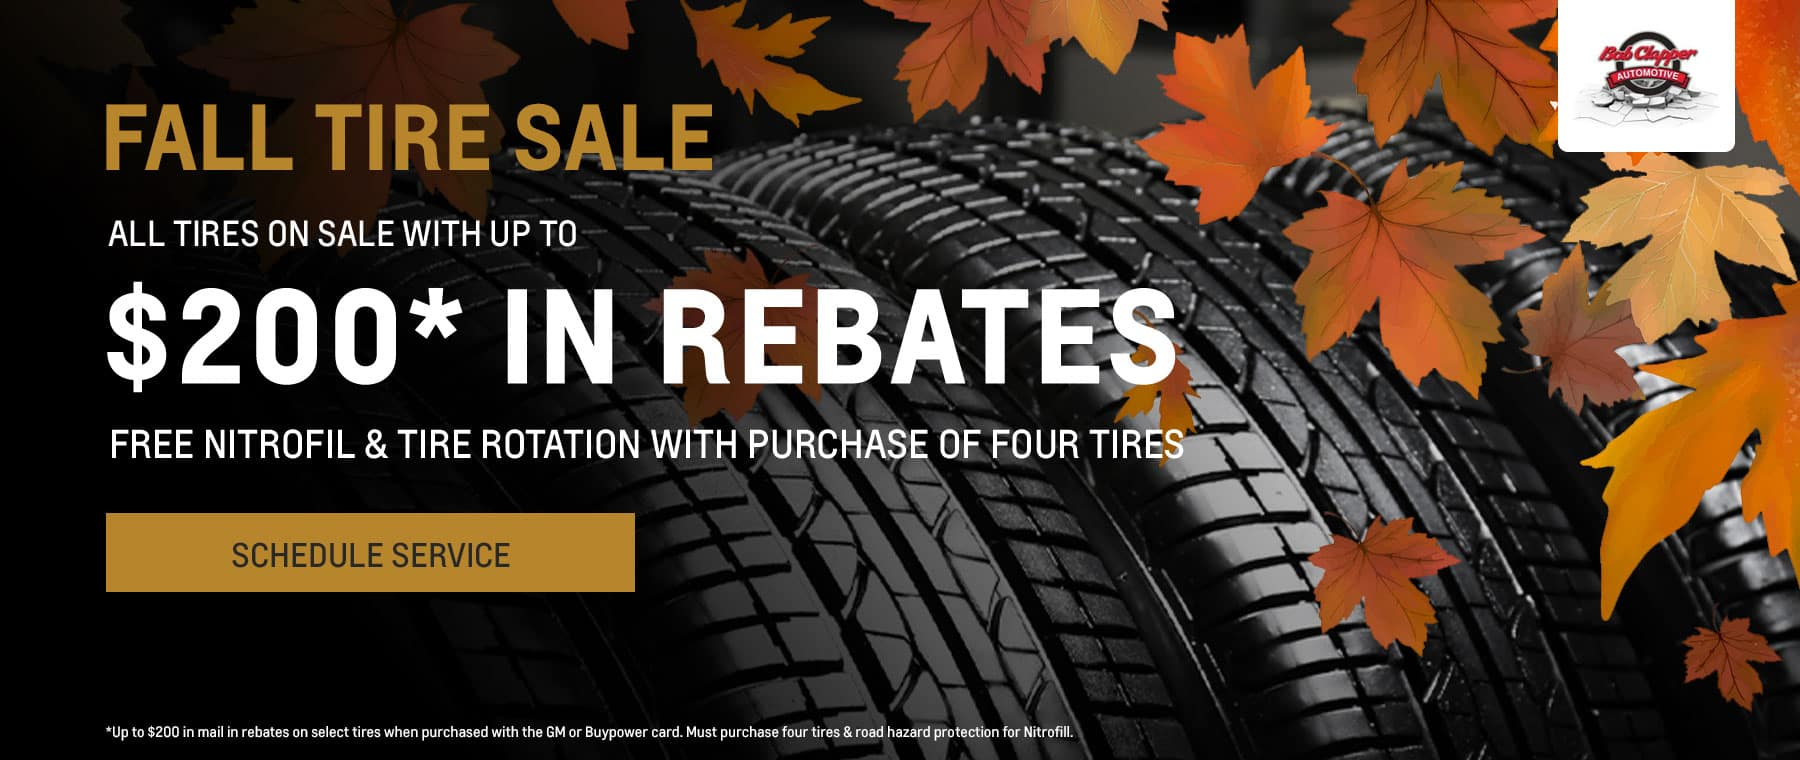 Fall Tire Sale - All Tires On Sale, with Up to $200 in rebates* - Free Nitrofil & Tire Rotation with purchase of Four Tires